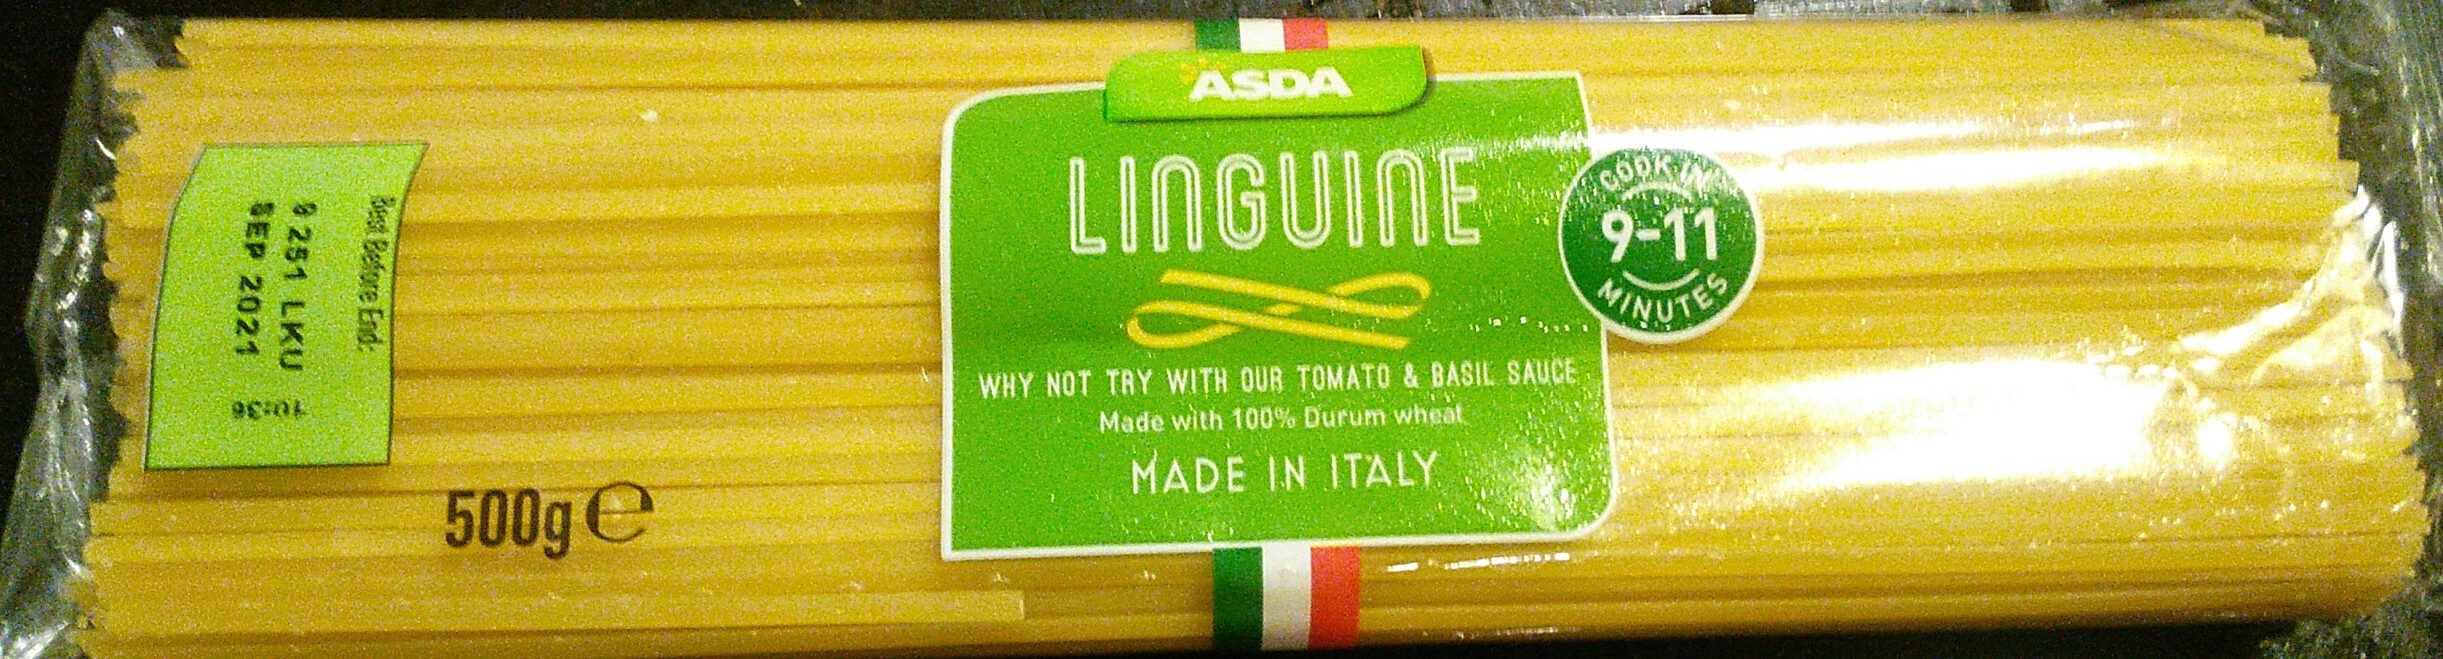 Linguine - Product - en